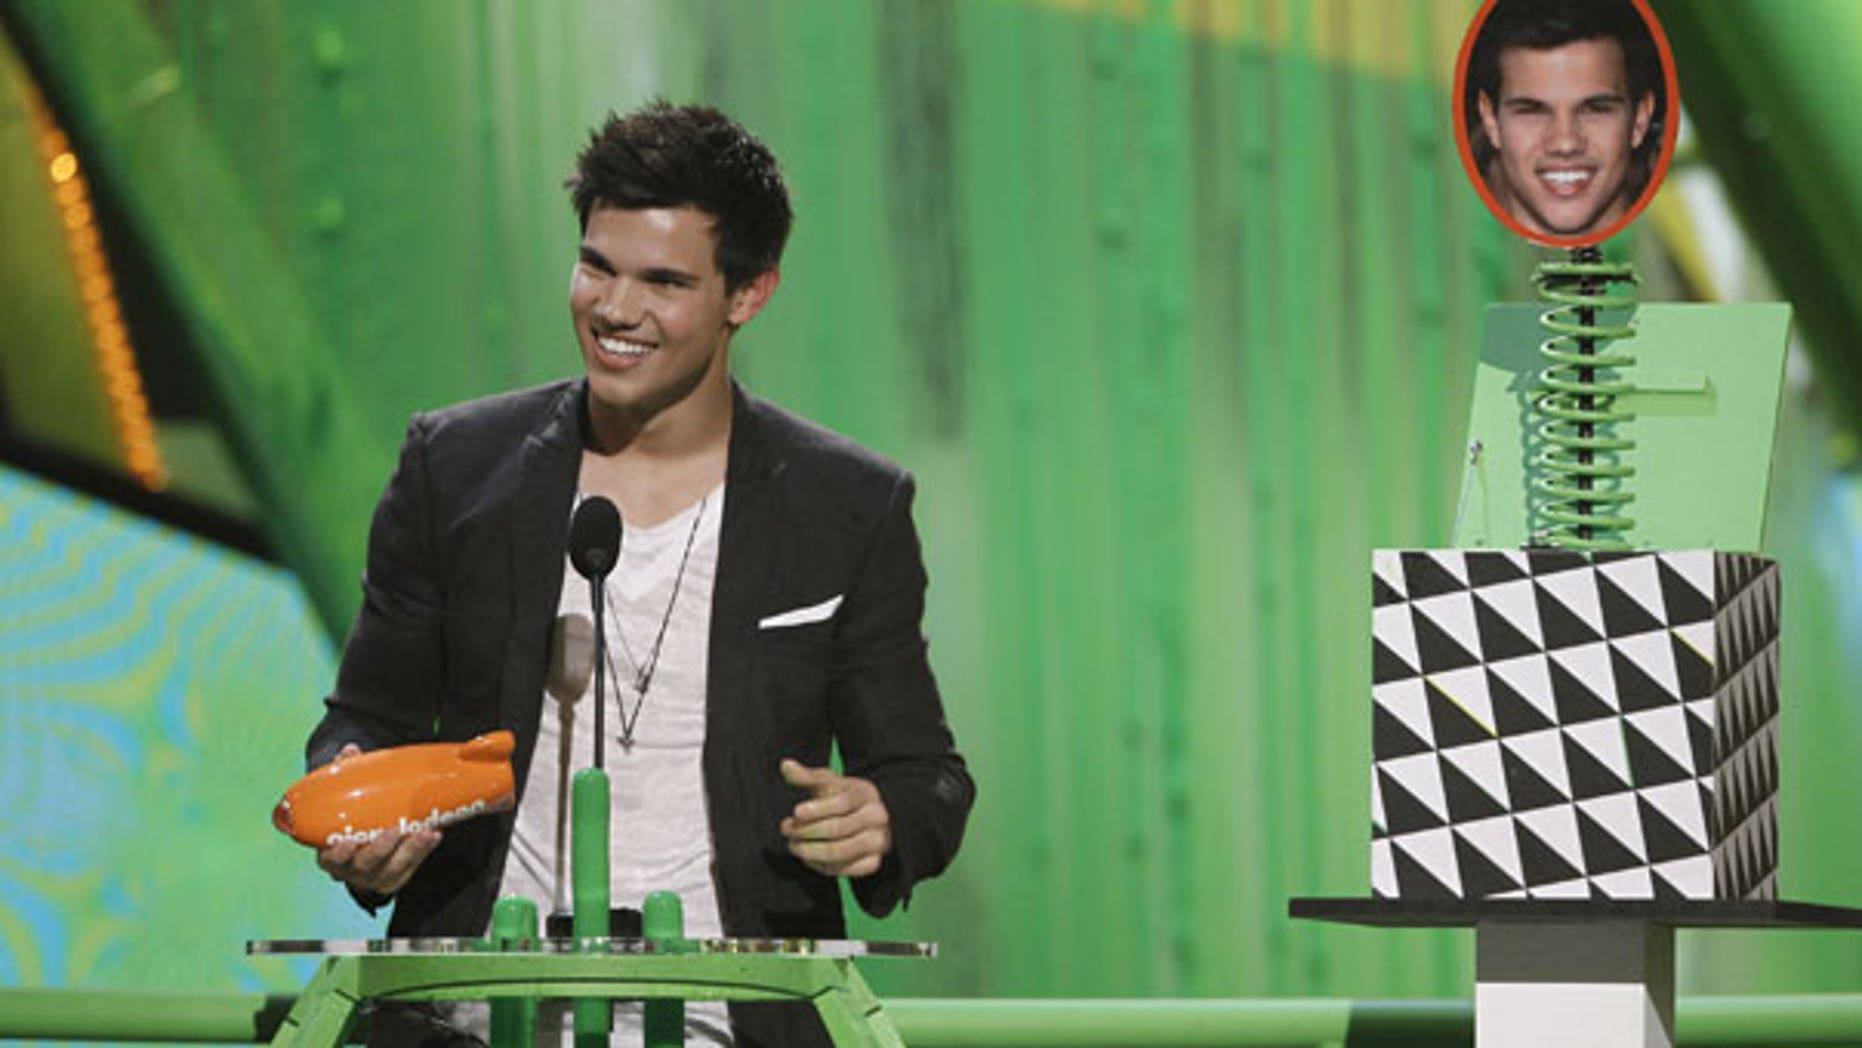 March 27: Taylor Lautner accepts the award for favorite movie actor at Nickelodeon's 23rd Annual Kids' Choice Awards. (AP)